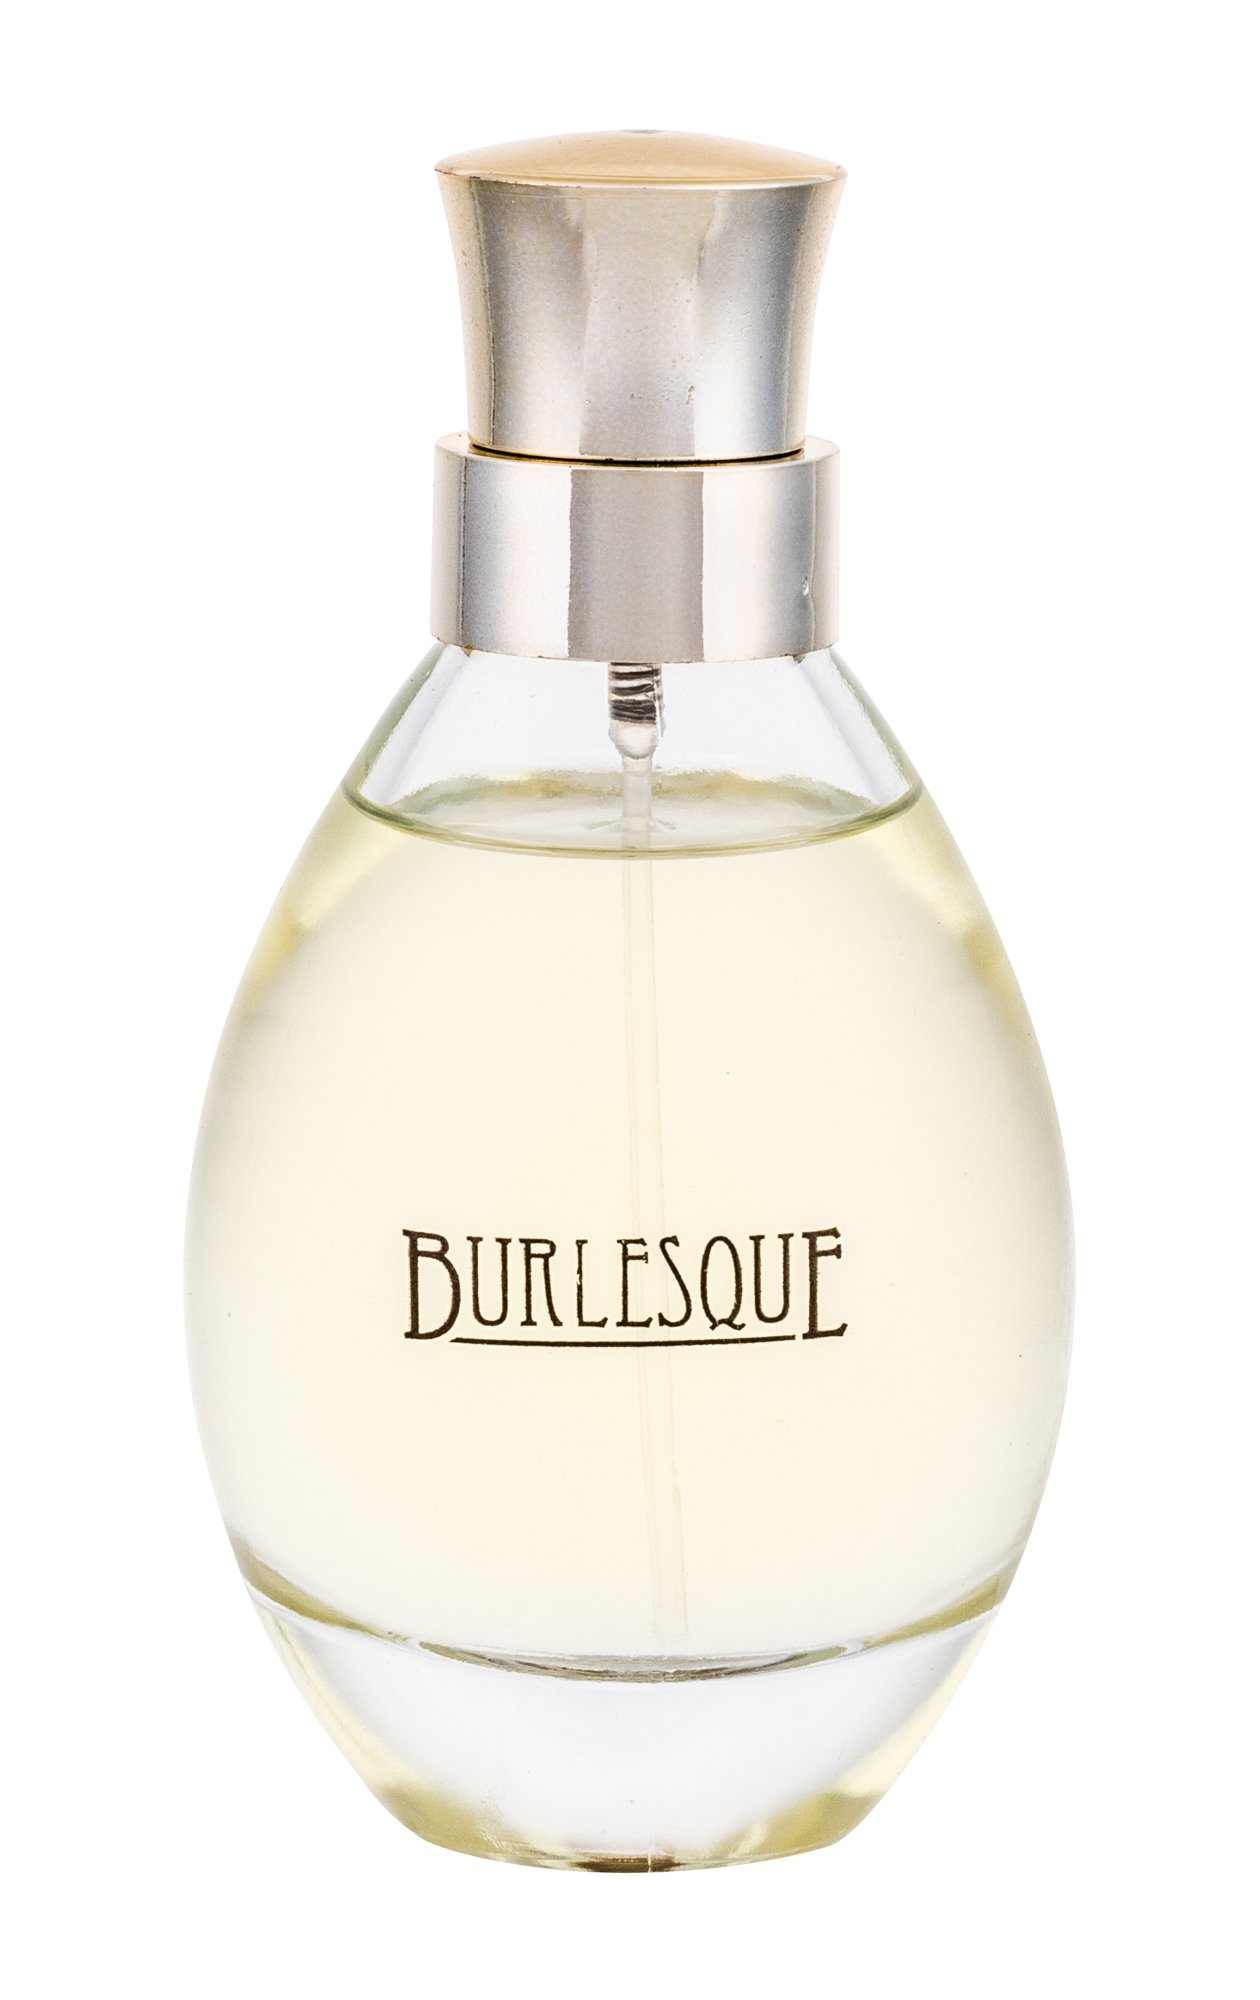 Parfum Collection Burlesque, edt 100ml